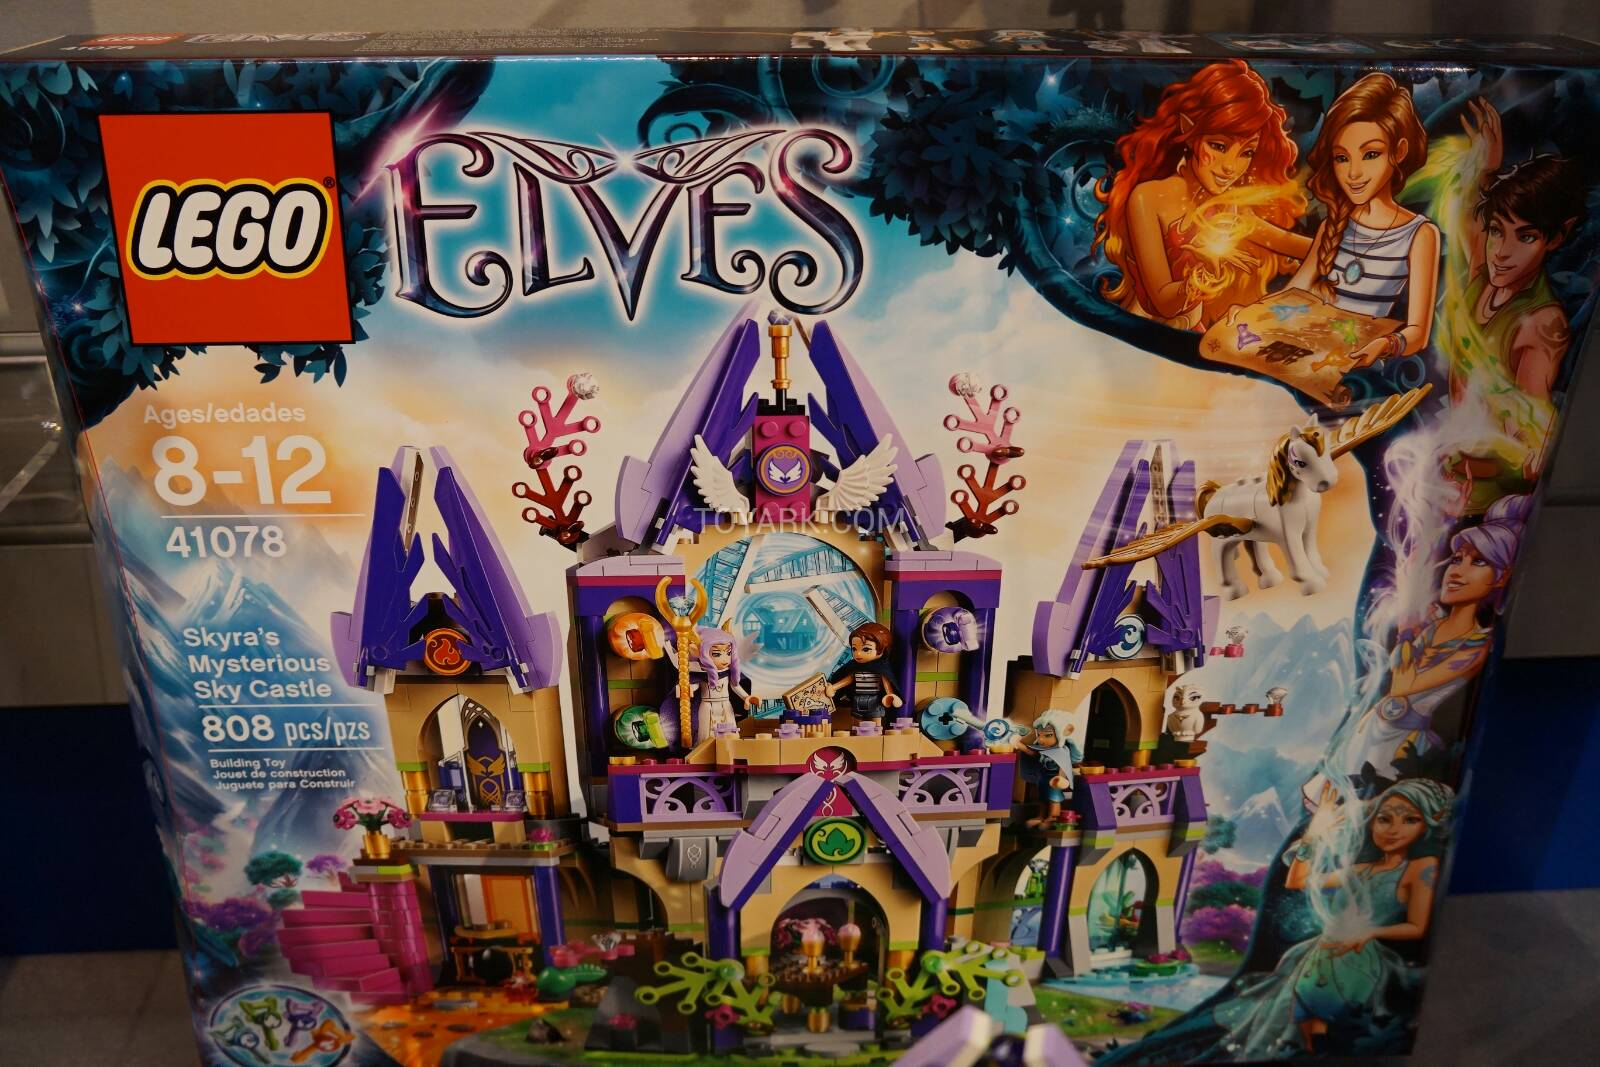 Toy-Fair-2015-LEGO-Elves-018.jpg